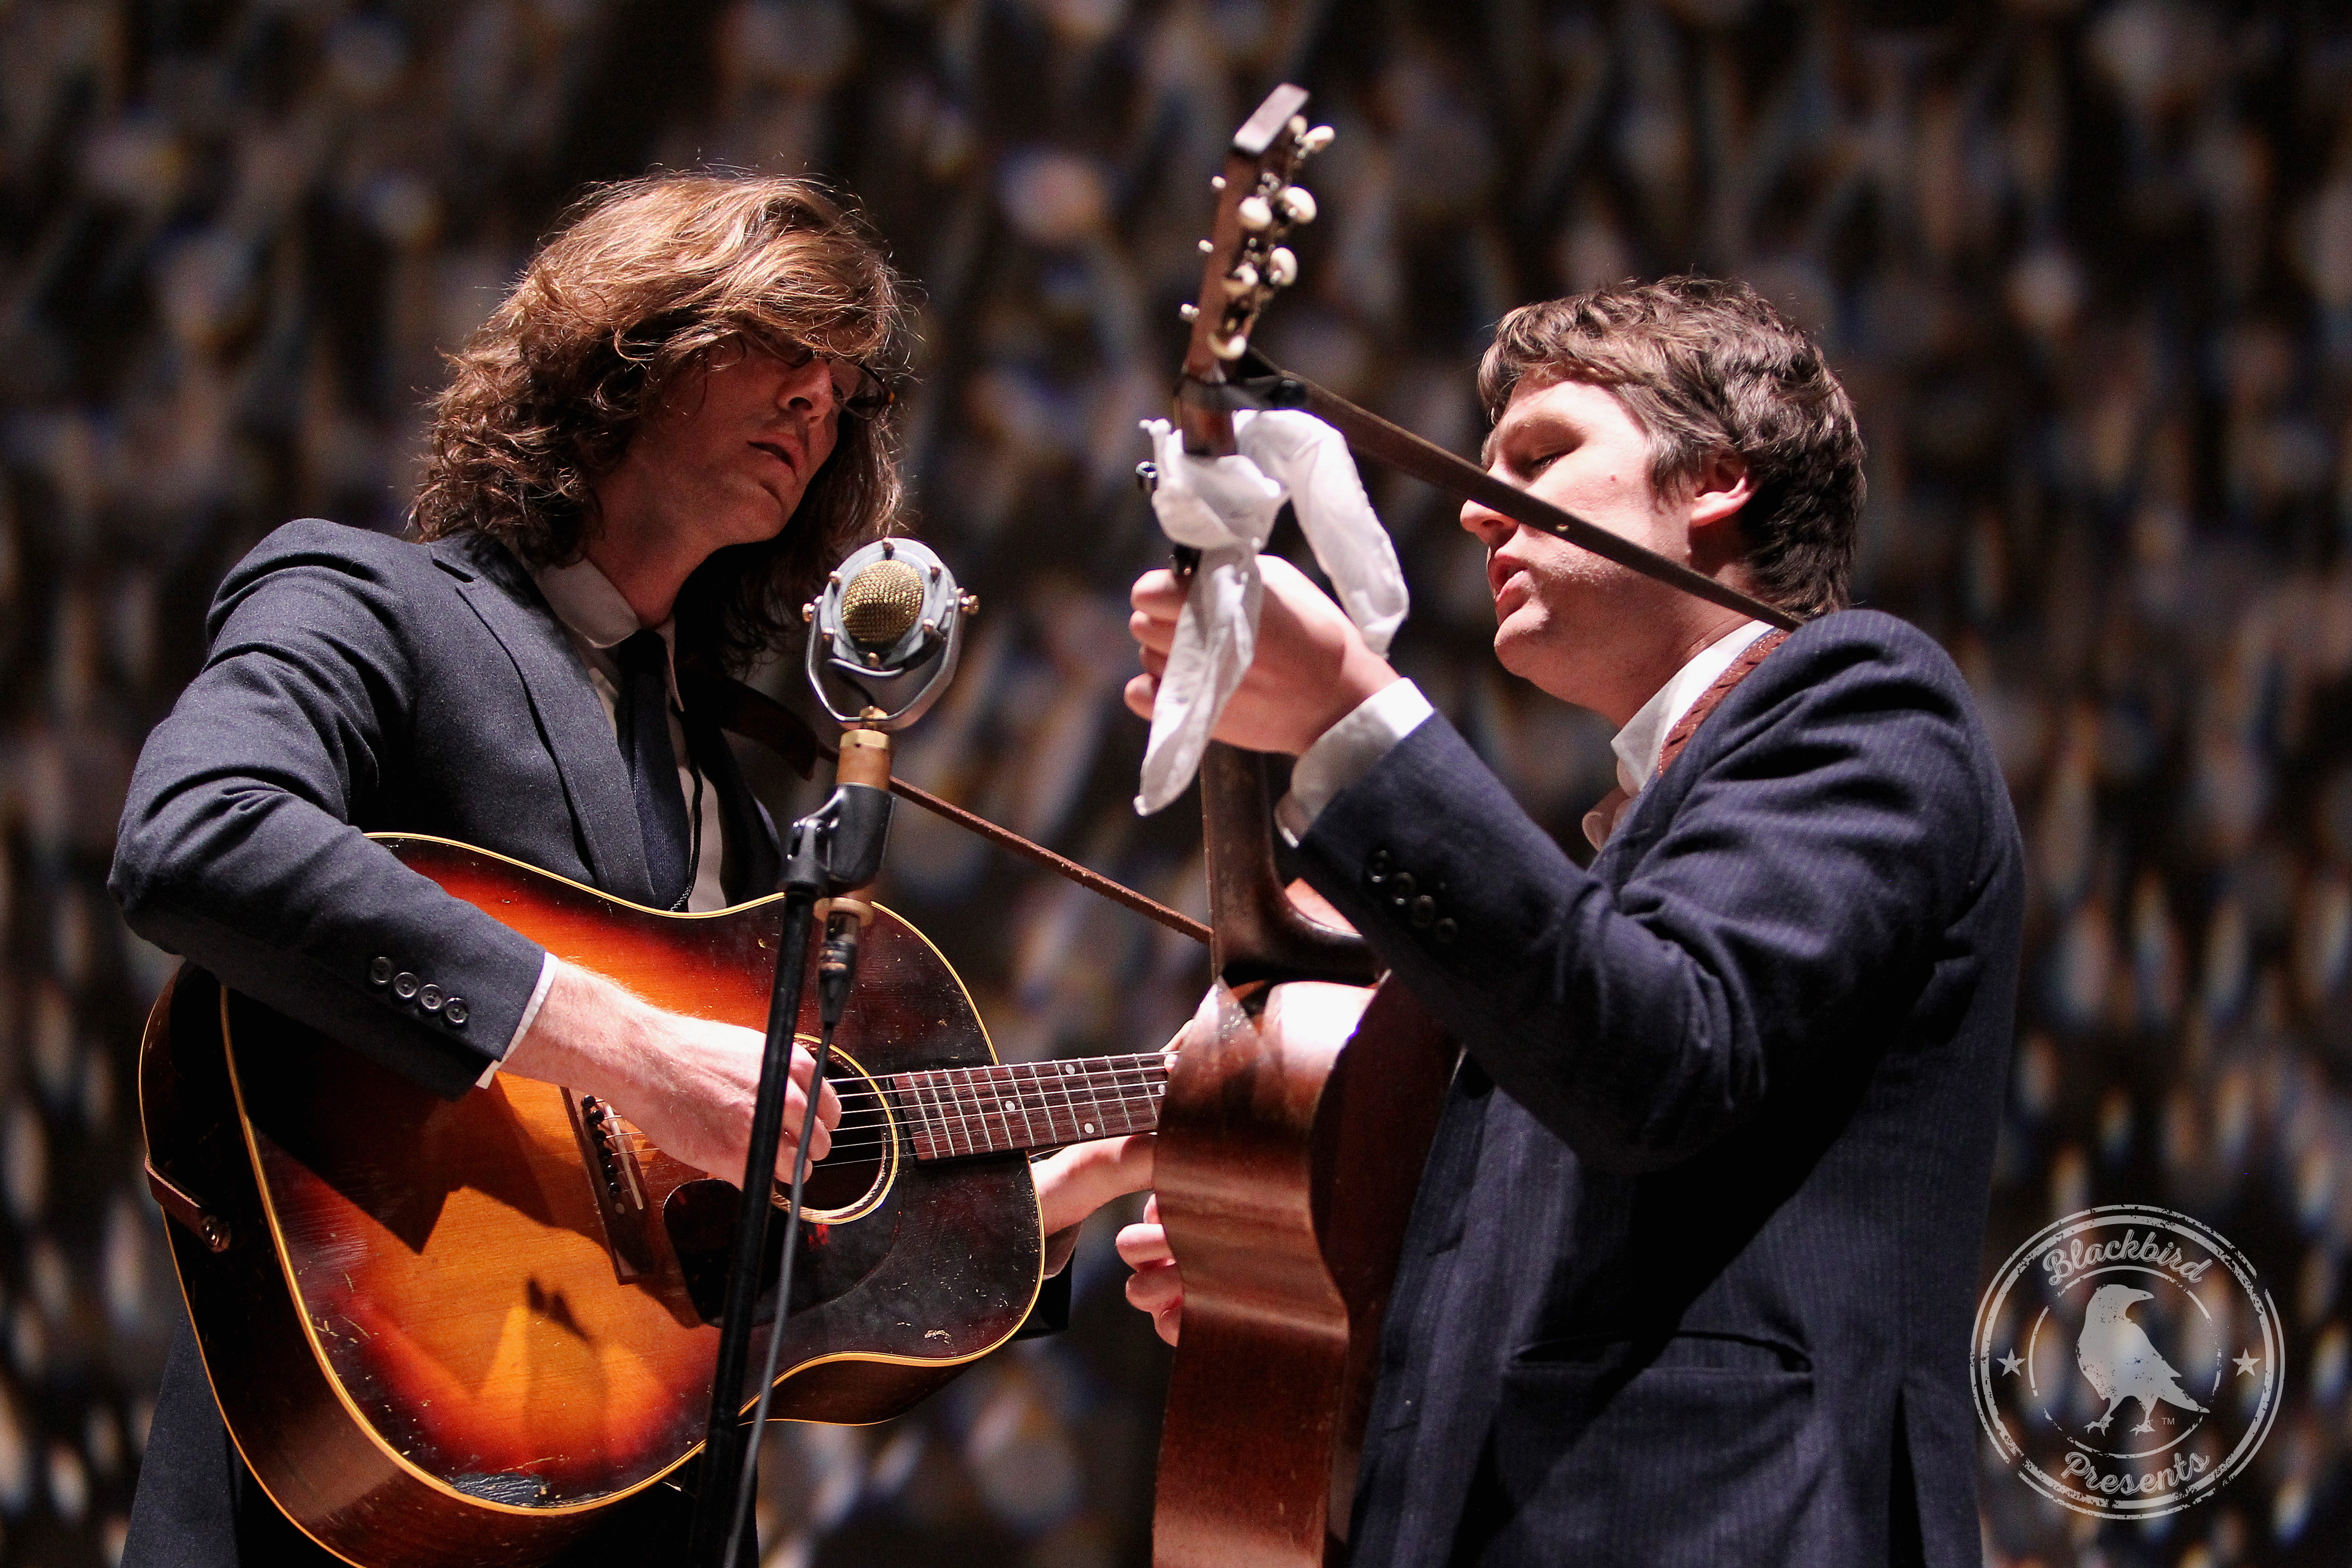 Life & Songs Of Emmylou Harris Gallery The Milk Carton Kids